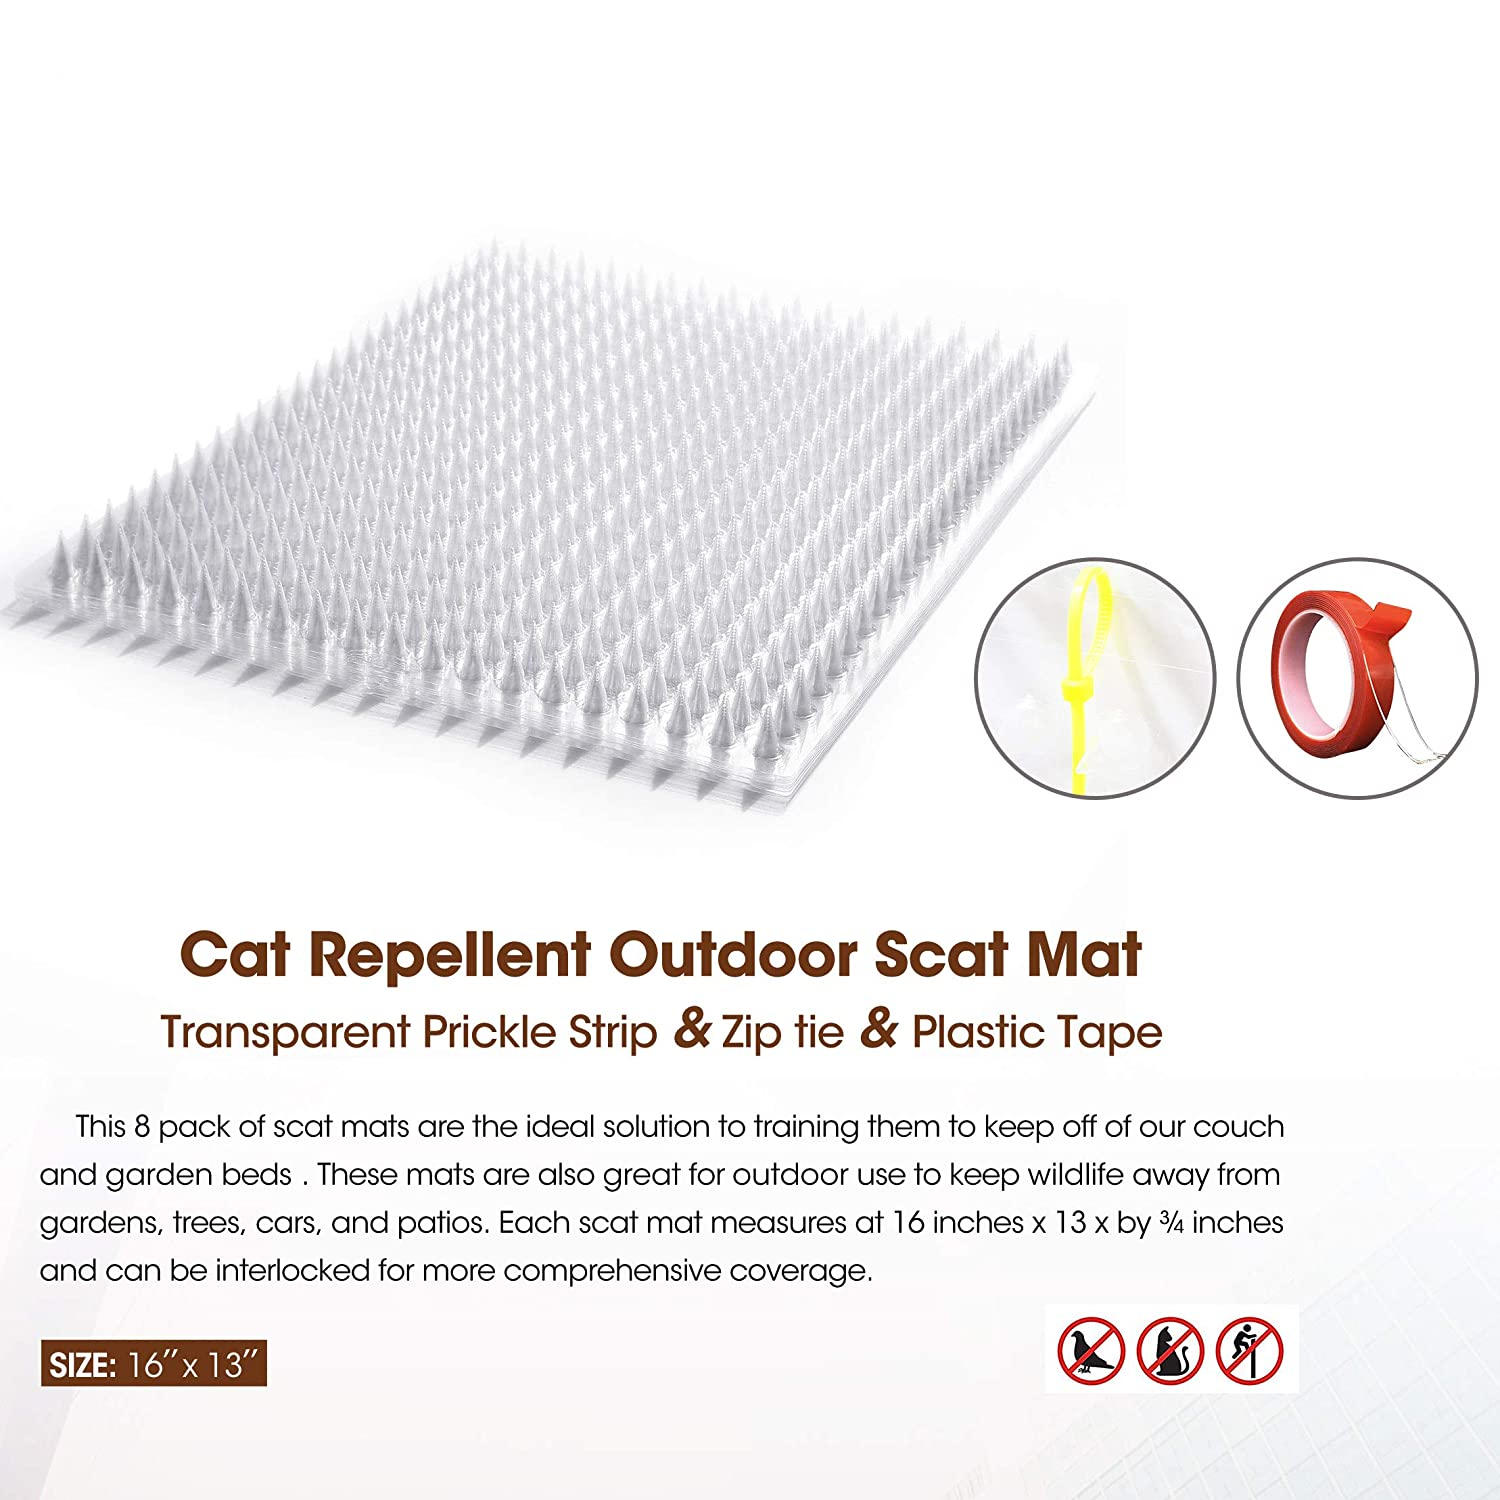 Amazon.com: Zipcase Cat Repellent/Deterrent Outdoor Scat Mat ...